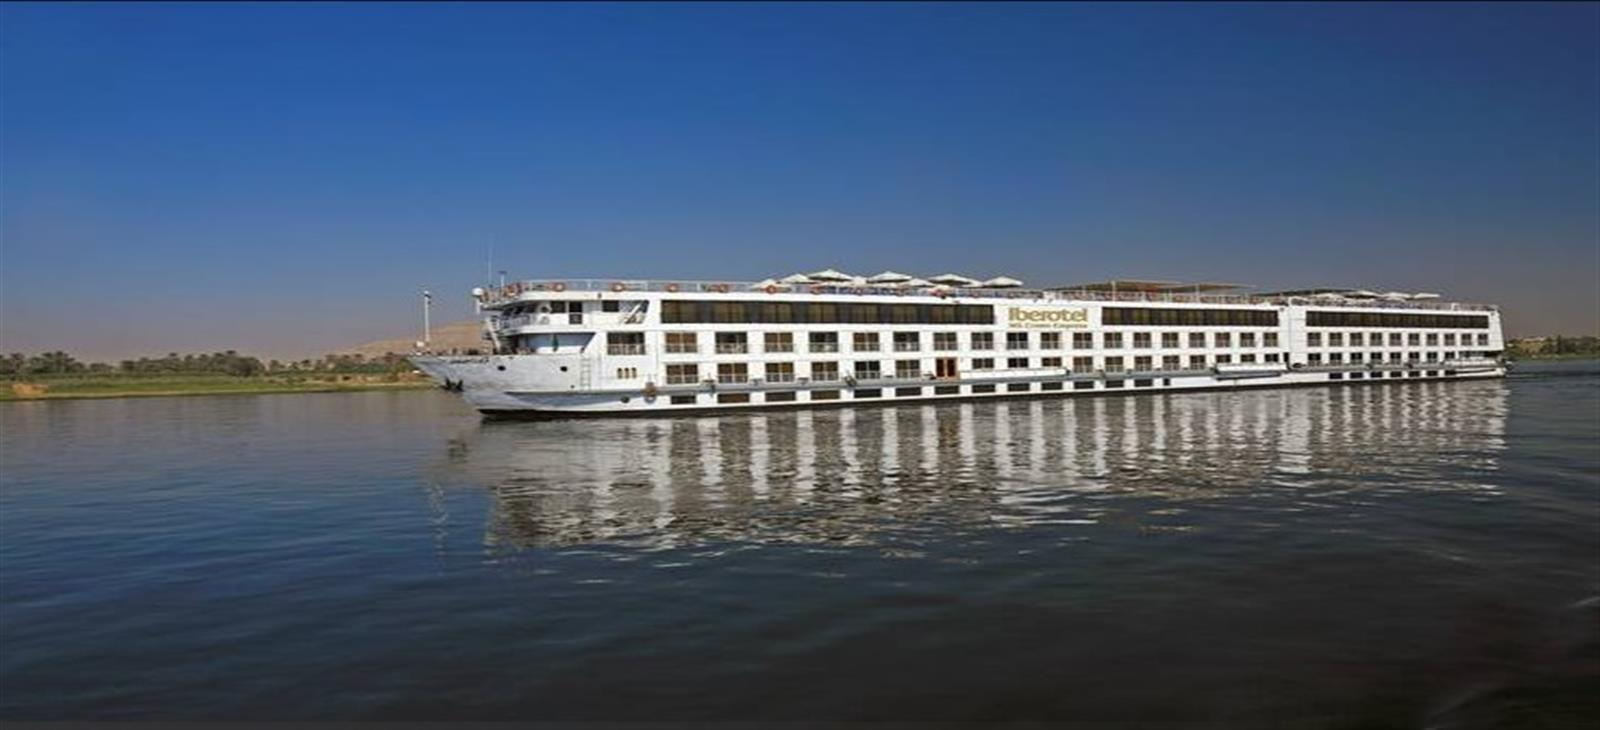 crown_empress_nile_cruise